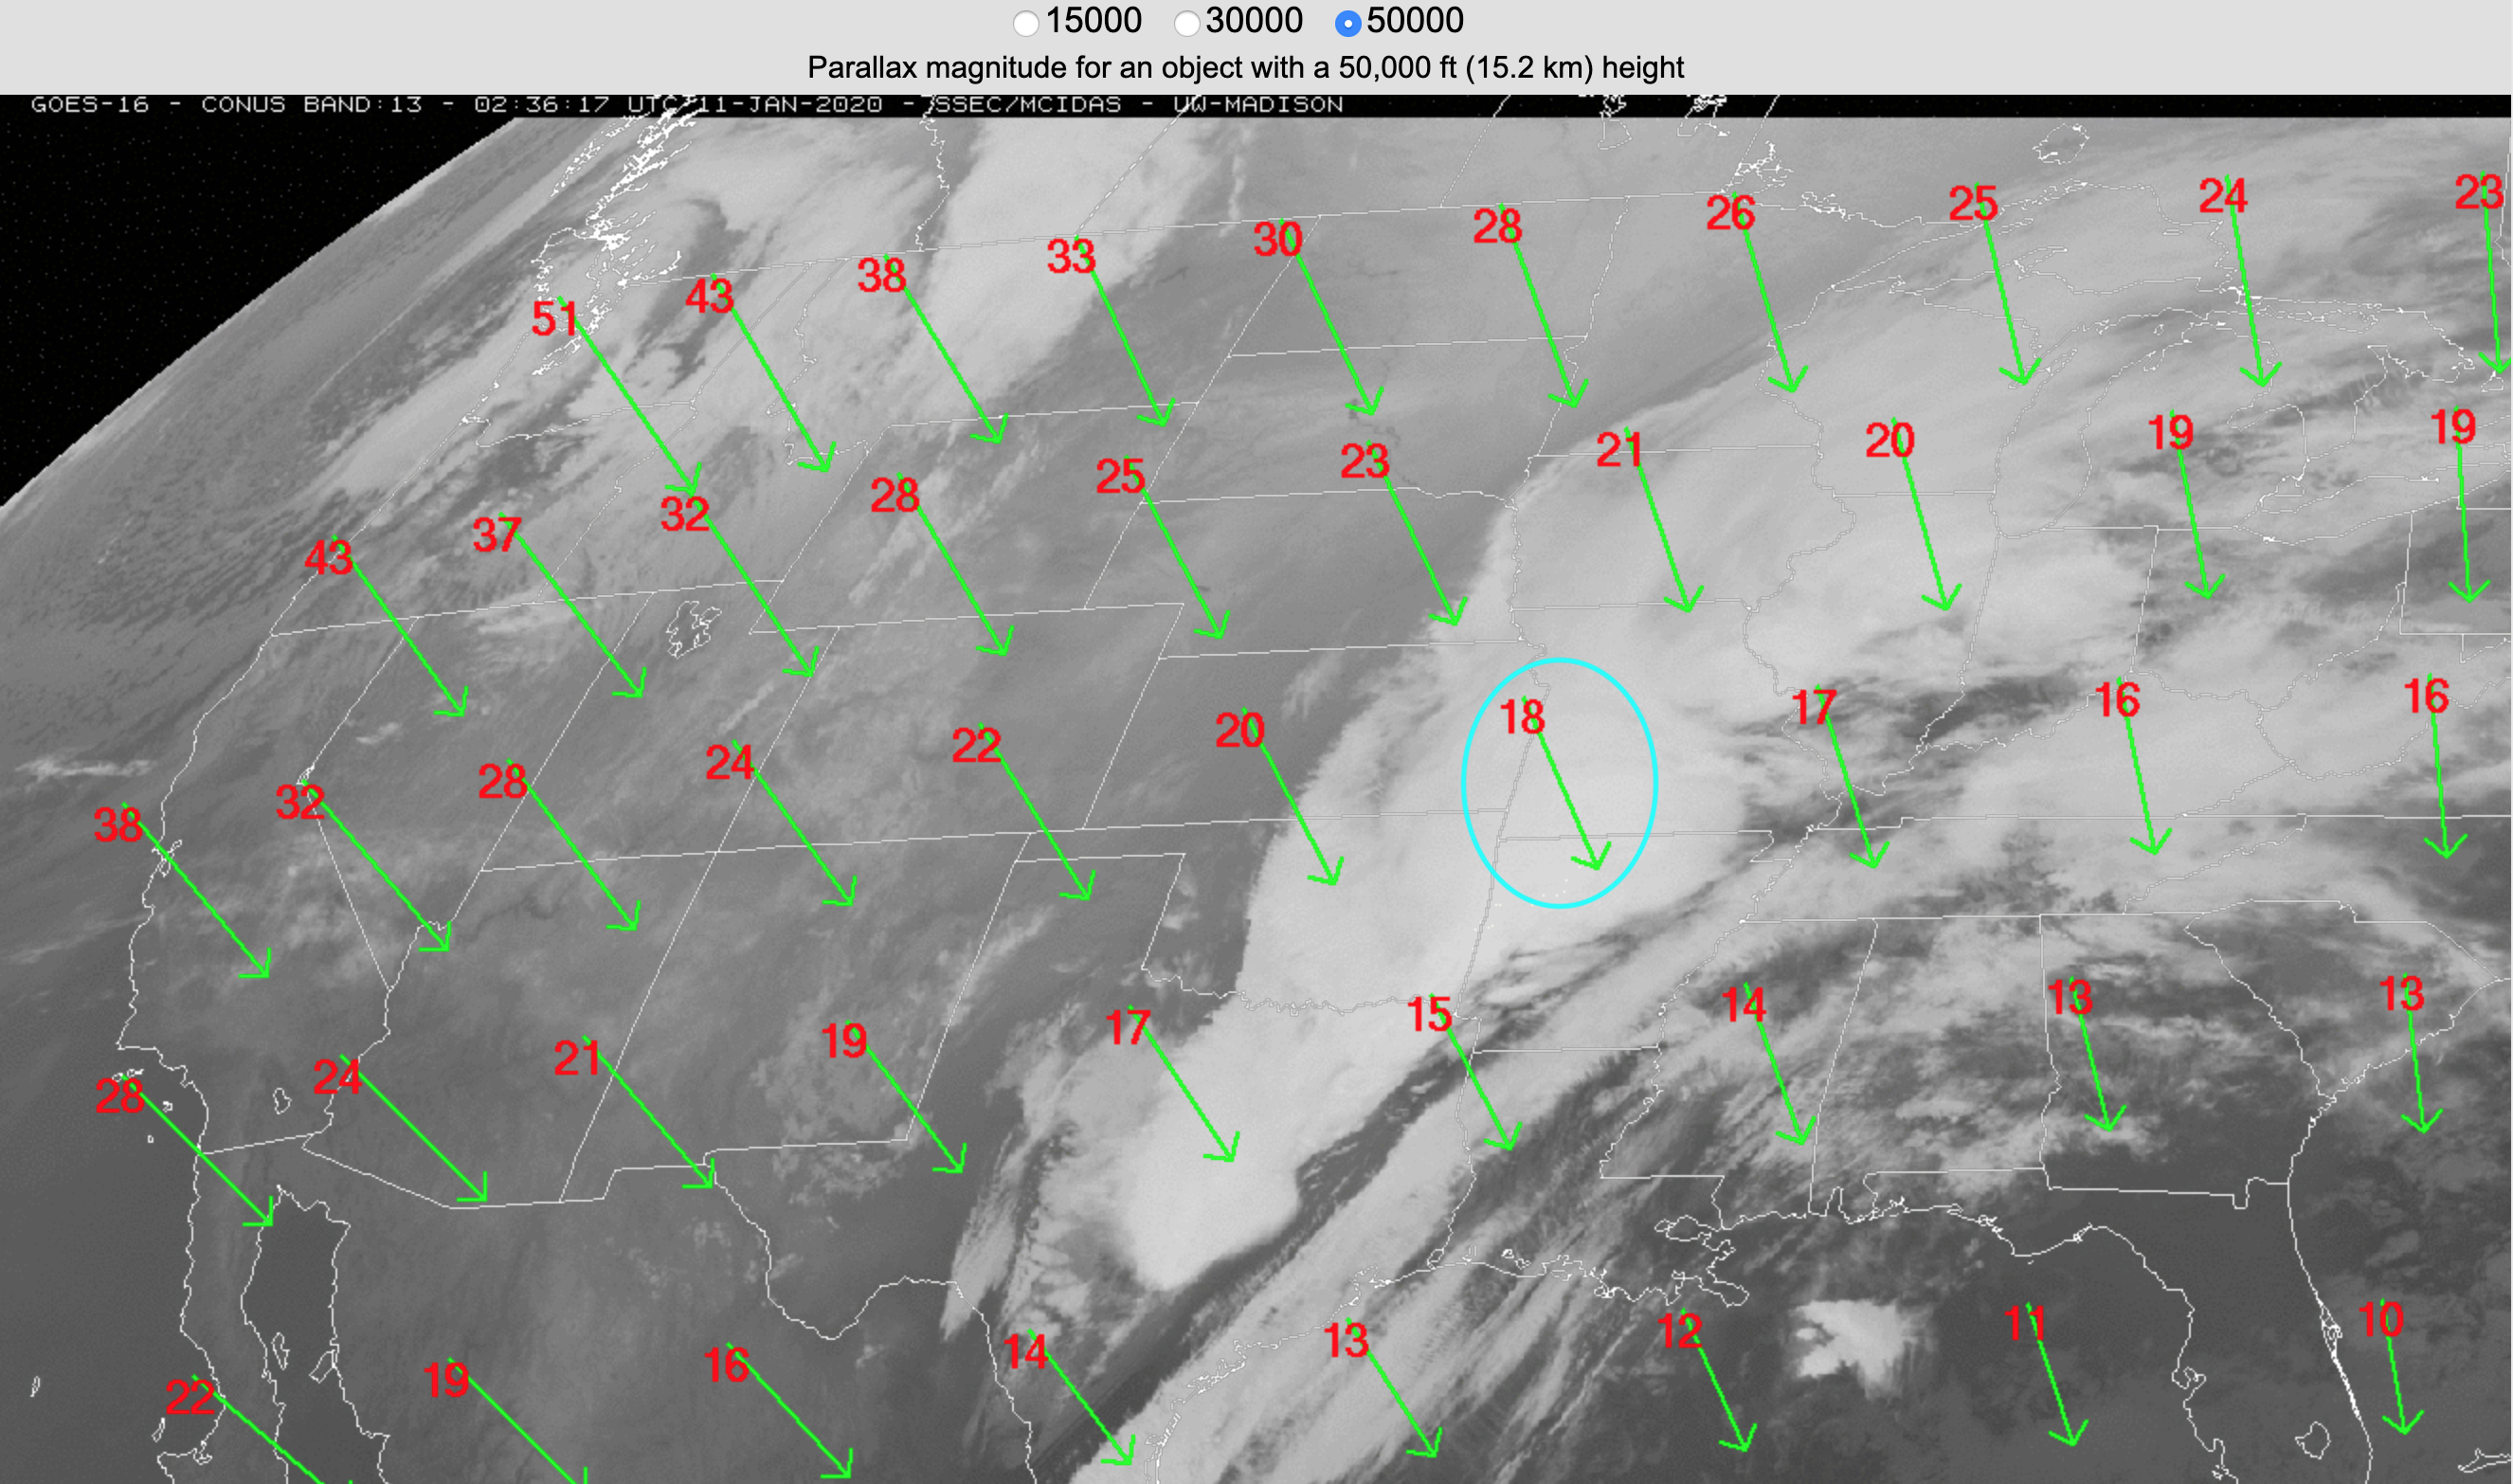 GOES-16 parallax direction vectors and magnitude (km) for a cloud top feature at 15 km [click to enlarge]